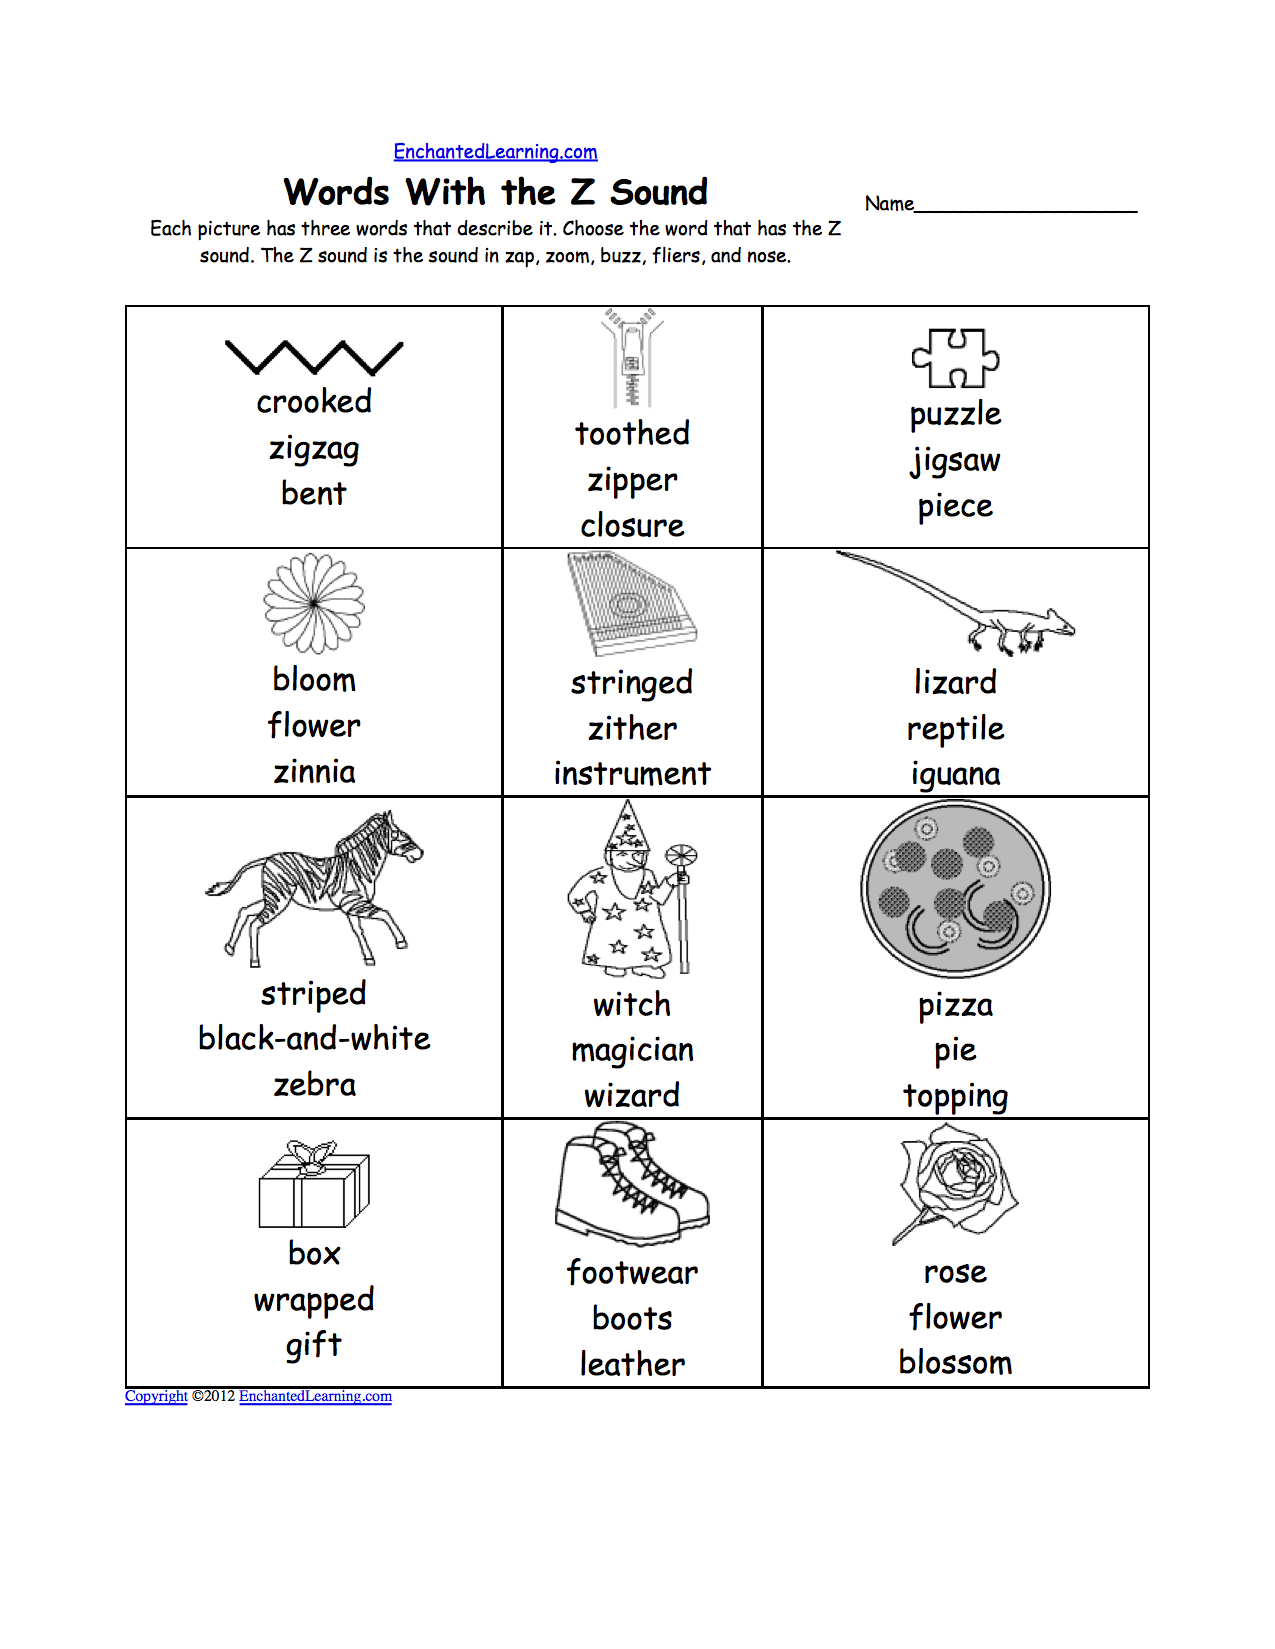 Aldiablosus  Gorgeous Phonics Worksheets Multiple Choice Worksheets To Print  With Extraordinary Phonics Worksheets Multiple Choice Worksheets To Print  Enchantedlearningcom With Astounding Elapsed Time Worksheets Grade  Also English Grammar Tenses Worksheets In Addition Beginning Algebra Worksheet And Rd Standard Maths Worksheets As Well As Free Kumon Printable Worksheets Additionally Worksheets Exponents From Enchantedlearningcom With Aldiablosus  Extraordinary Phonics Worksheets Multiple Choice Worksheets To Print  With Astounding Phonics Worksheets Multiple Choice Worksheets To Print  Enchantedlearningcom And Gorgeous Elapsed Time Worksheets Grade  Also English Grammar Tenses Worksheets In Addition Beginning Algebra Worksheet From Enchantedlearningcom